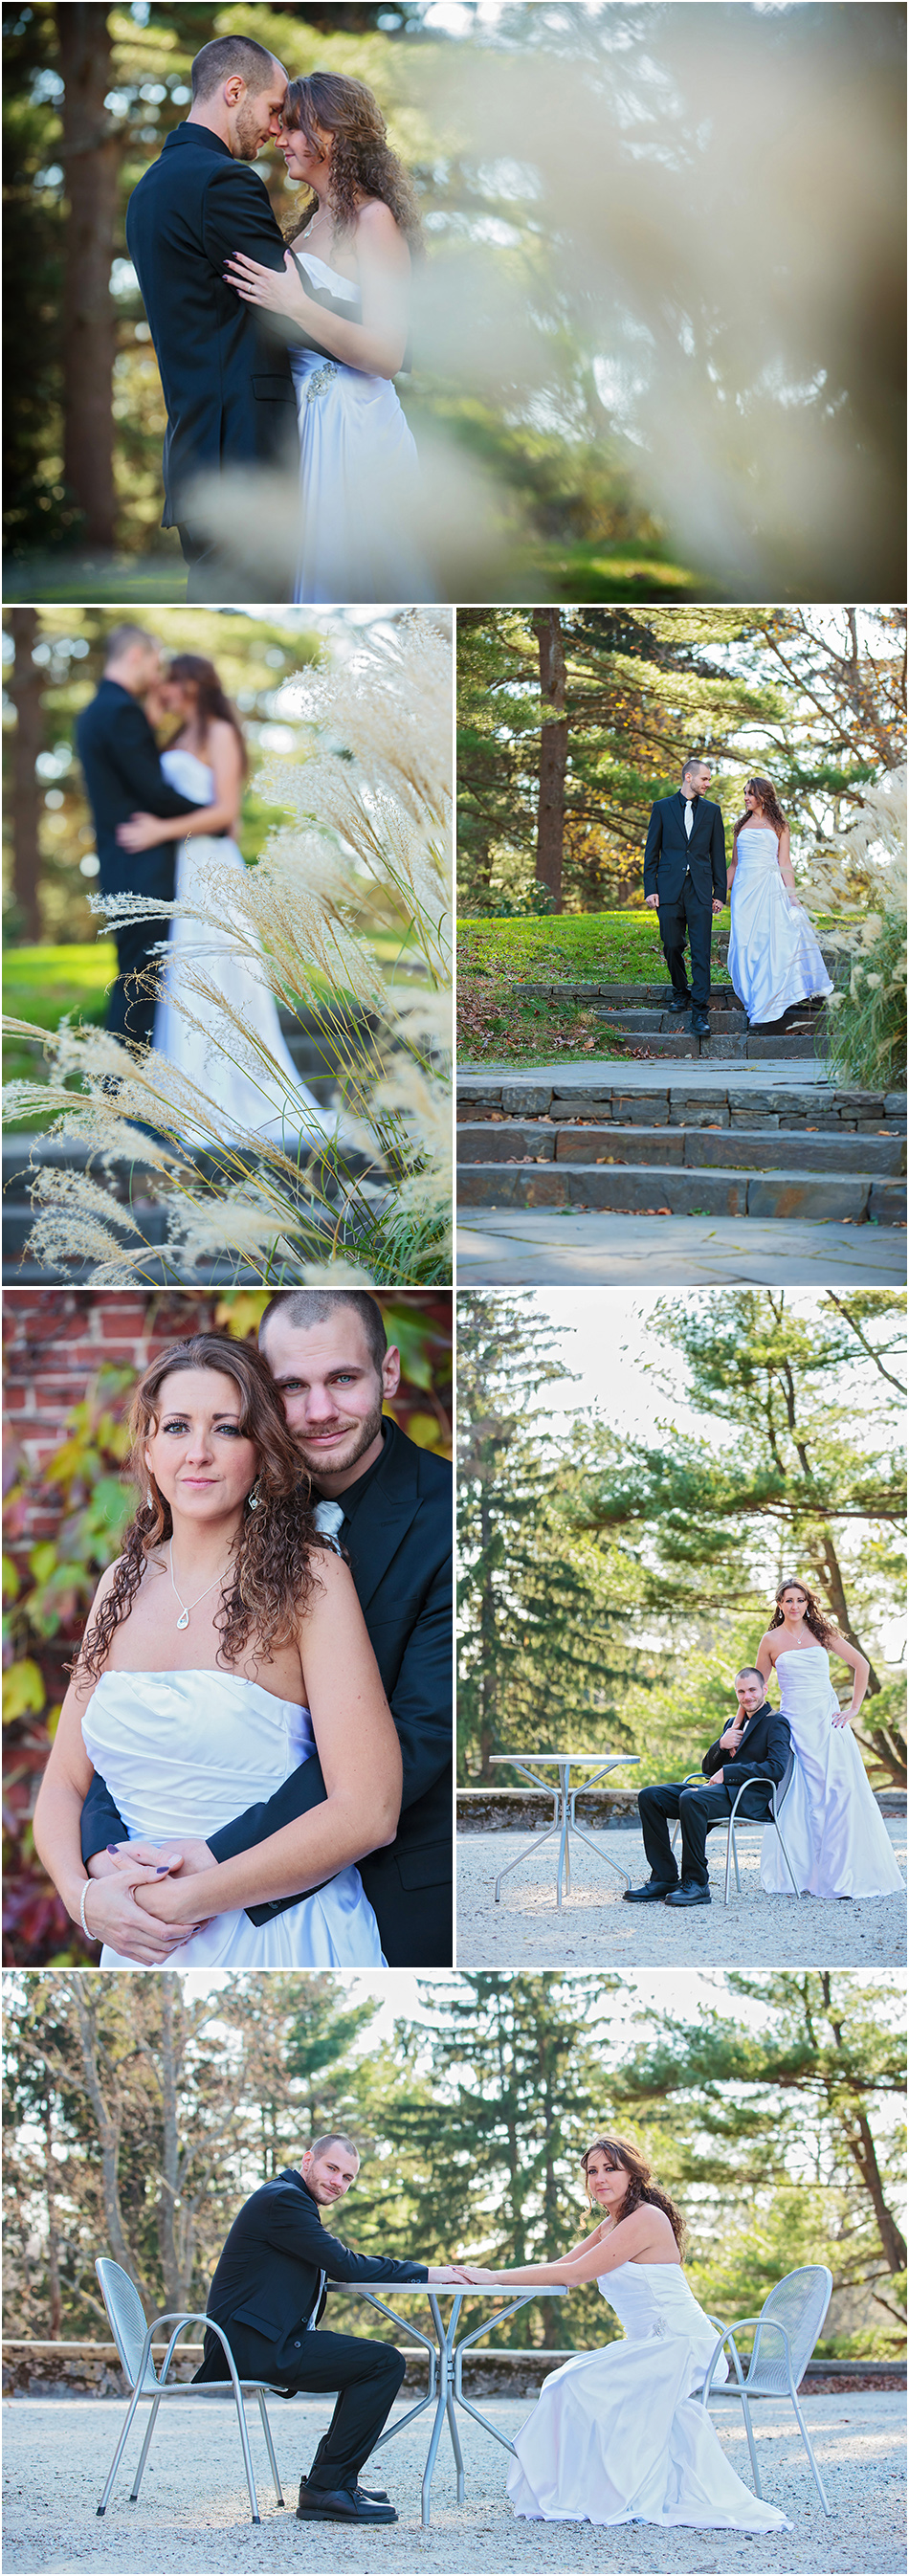 ROBERTO FARREN PHOTOGRAPHY | NEW ENGLAND AND BOSTON WEDDING PHOTOGRAPHER | DECORDOVA MUSEUM WEDDING